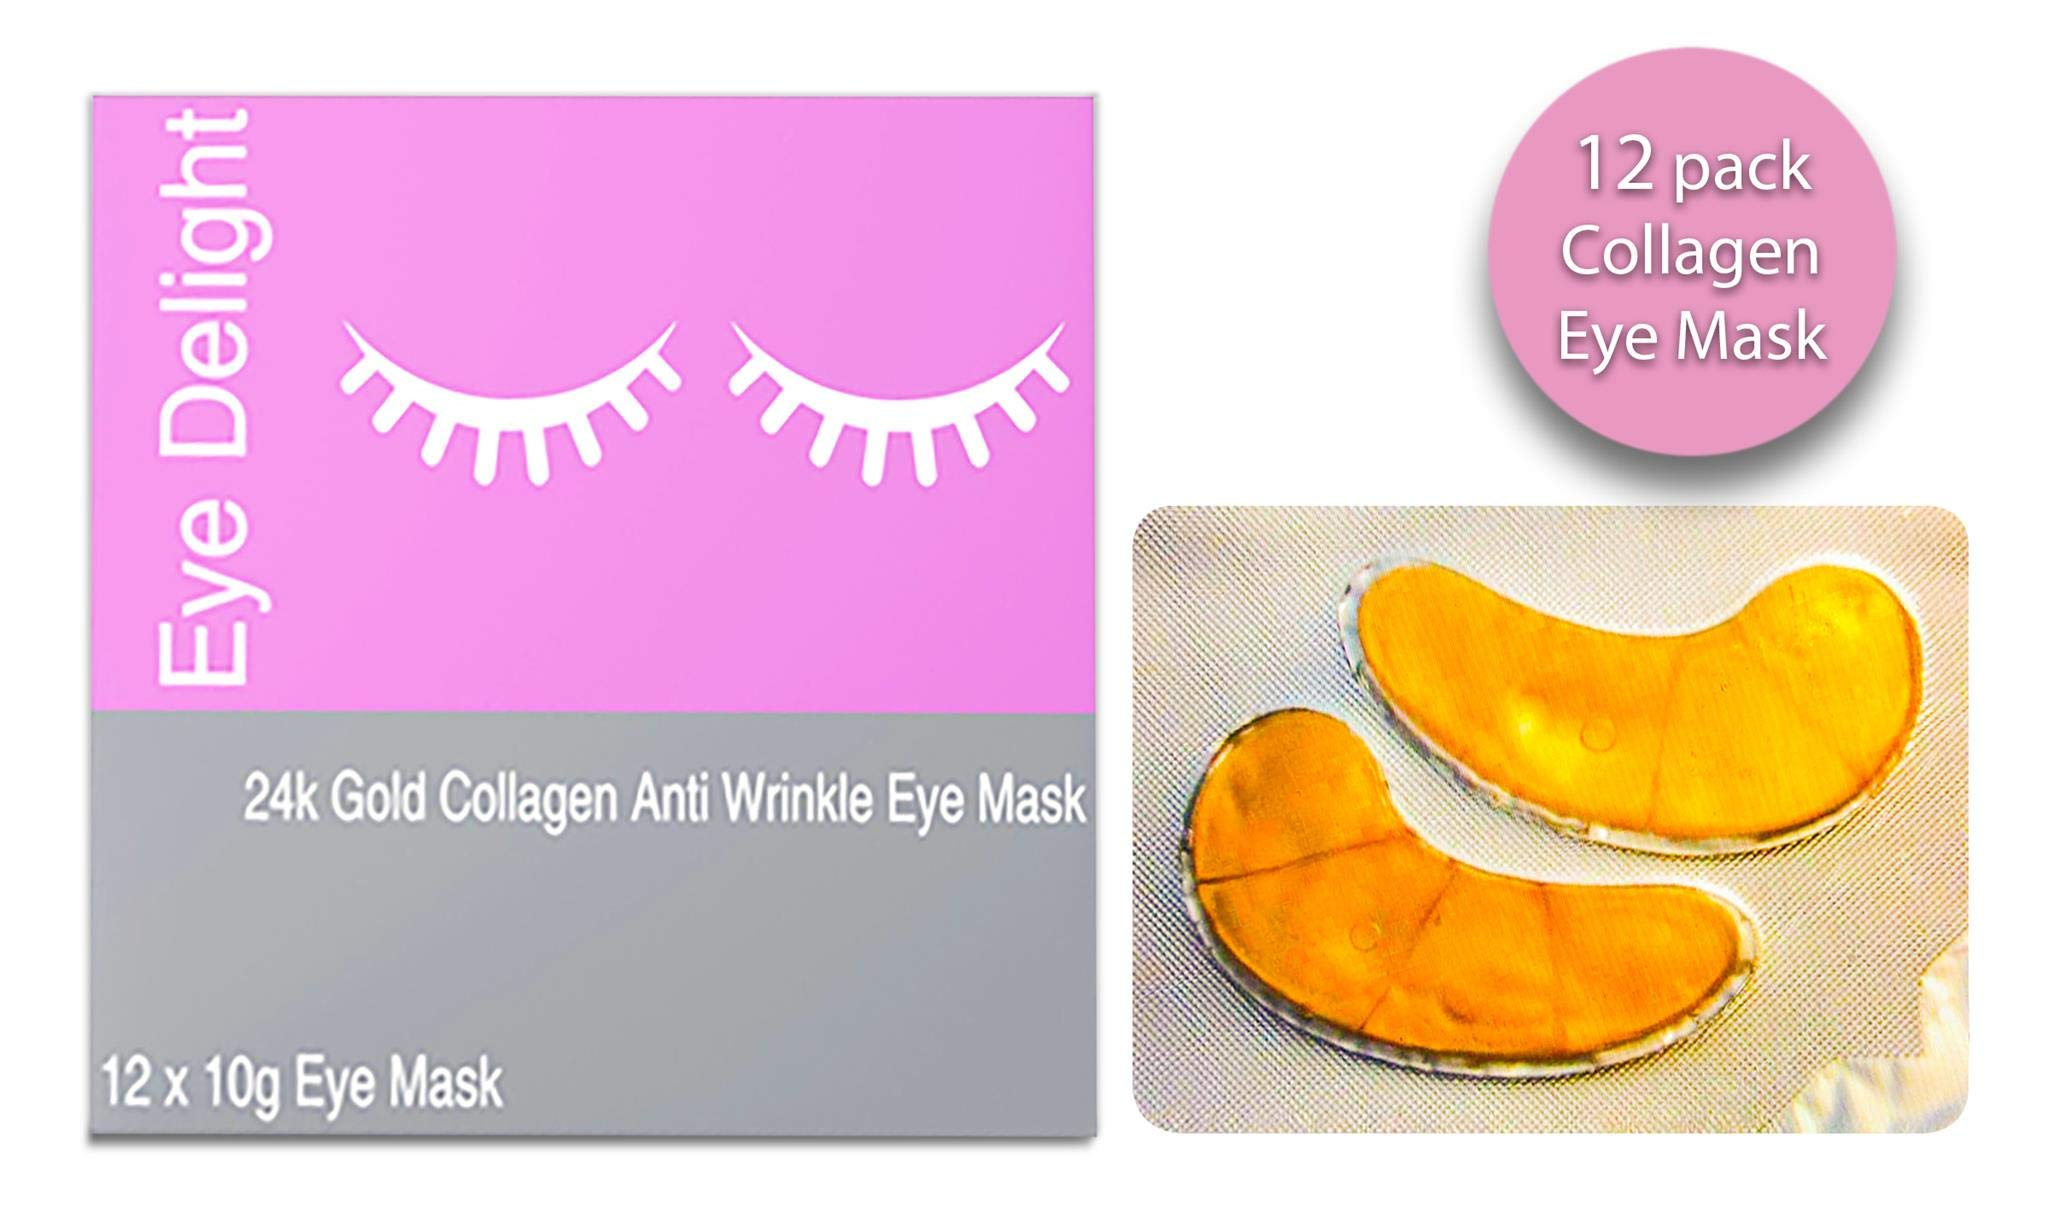 (12 Pairs) Luxury Collagen Eye Masks,Premium Anti Aging Moisturizing Depuffing With Hyaluronic Acid. For Fine Lines,Puffiness&Dark Circles,Cooling Soothe Pads Sheets Hydrating Under Eye Wrinkles